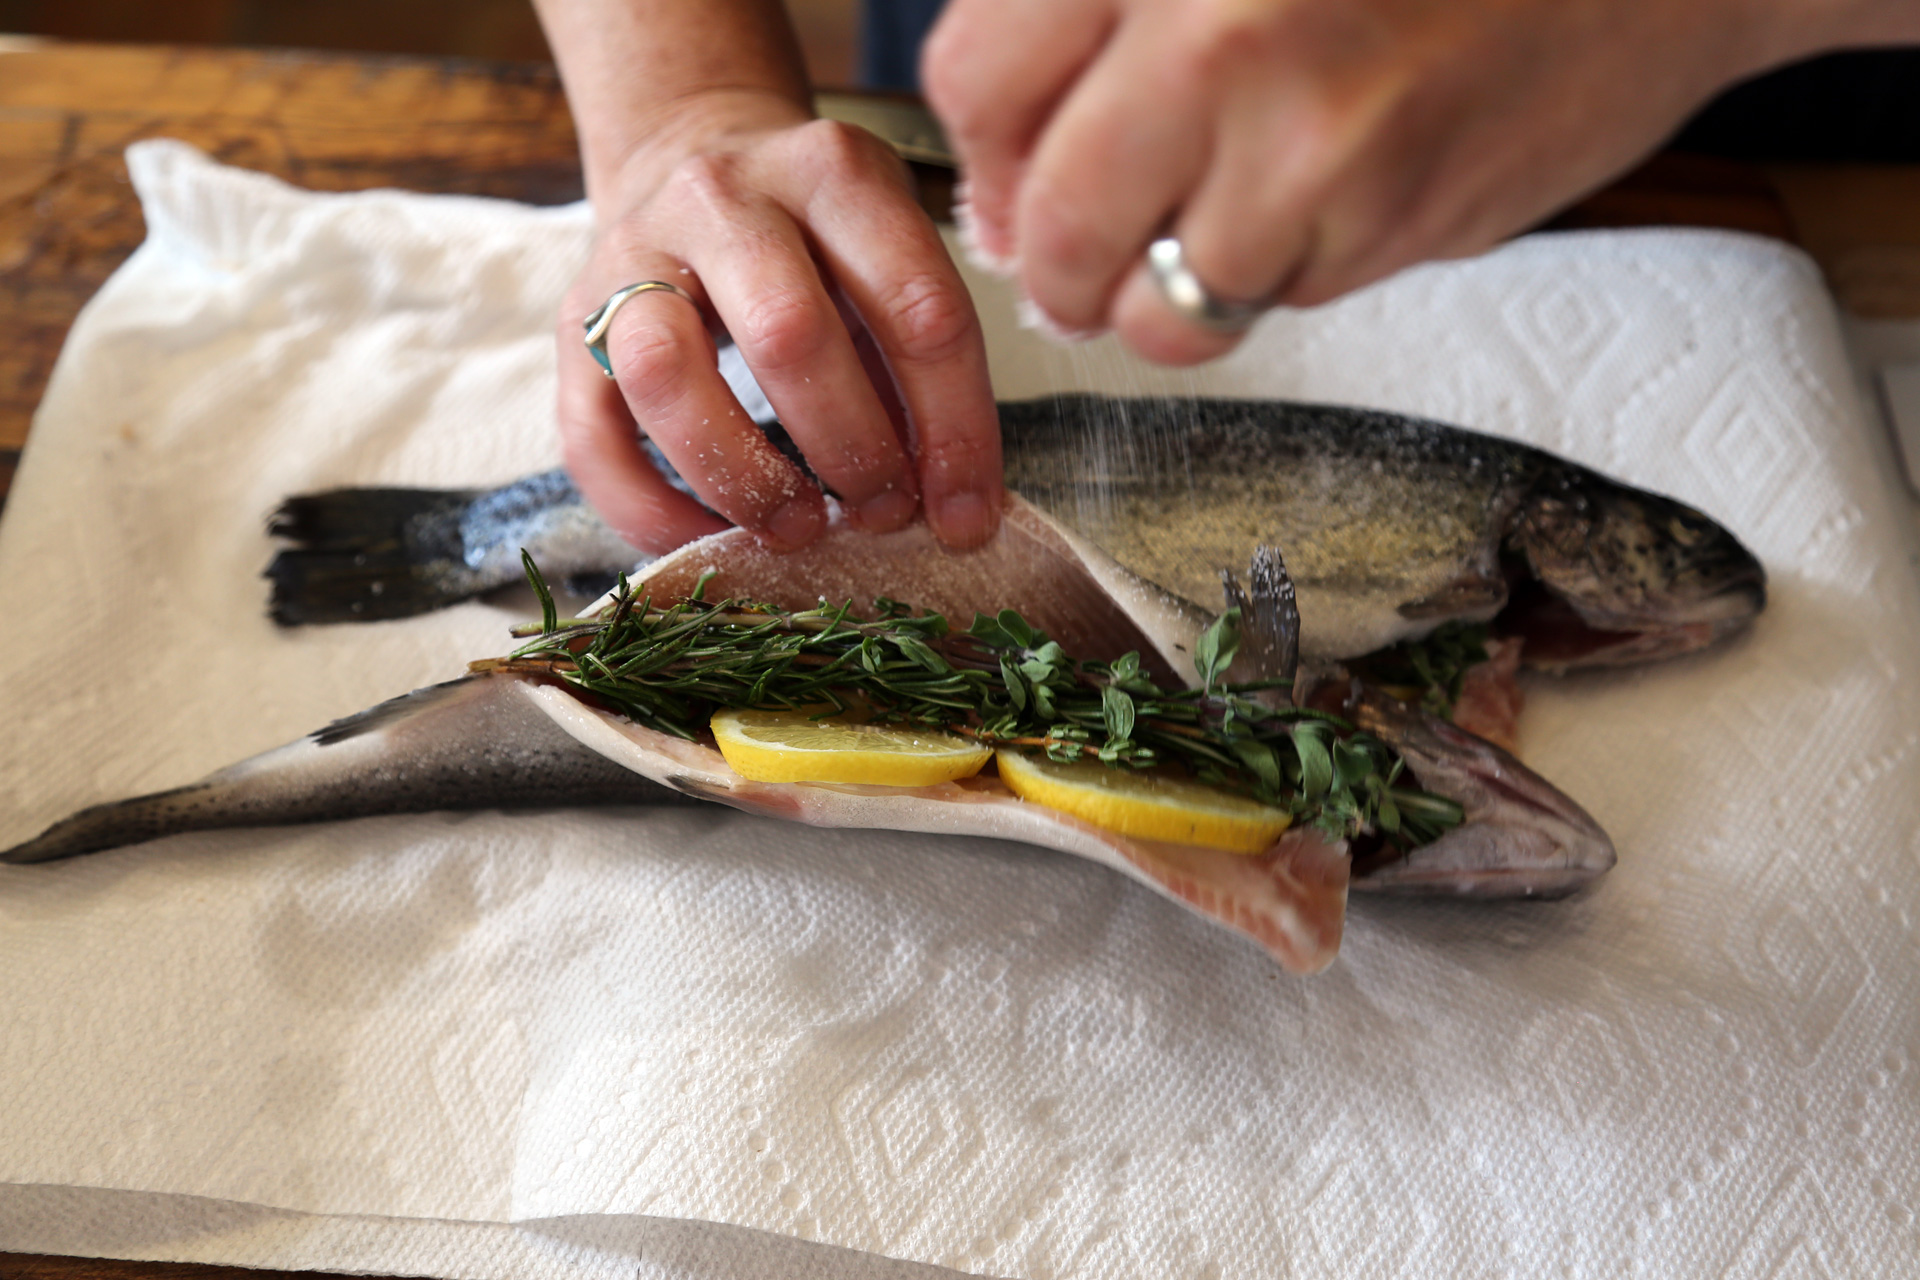 Sprinkle the cavity of each trout with salt. Stuff each trout with lemon slices and herb sprigs.